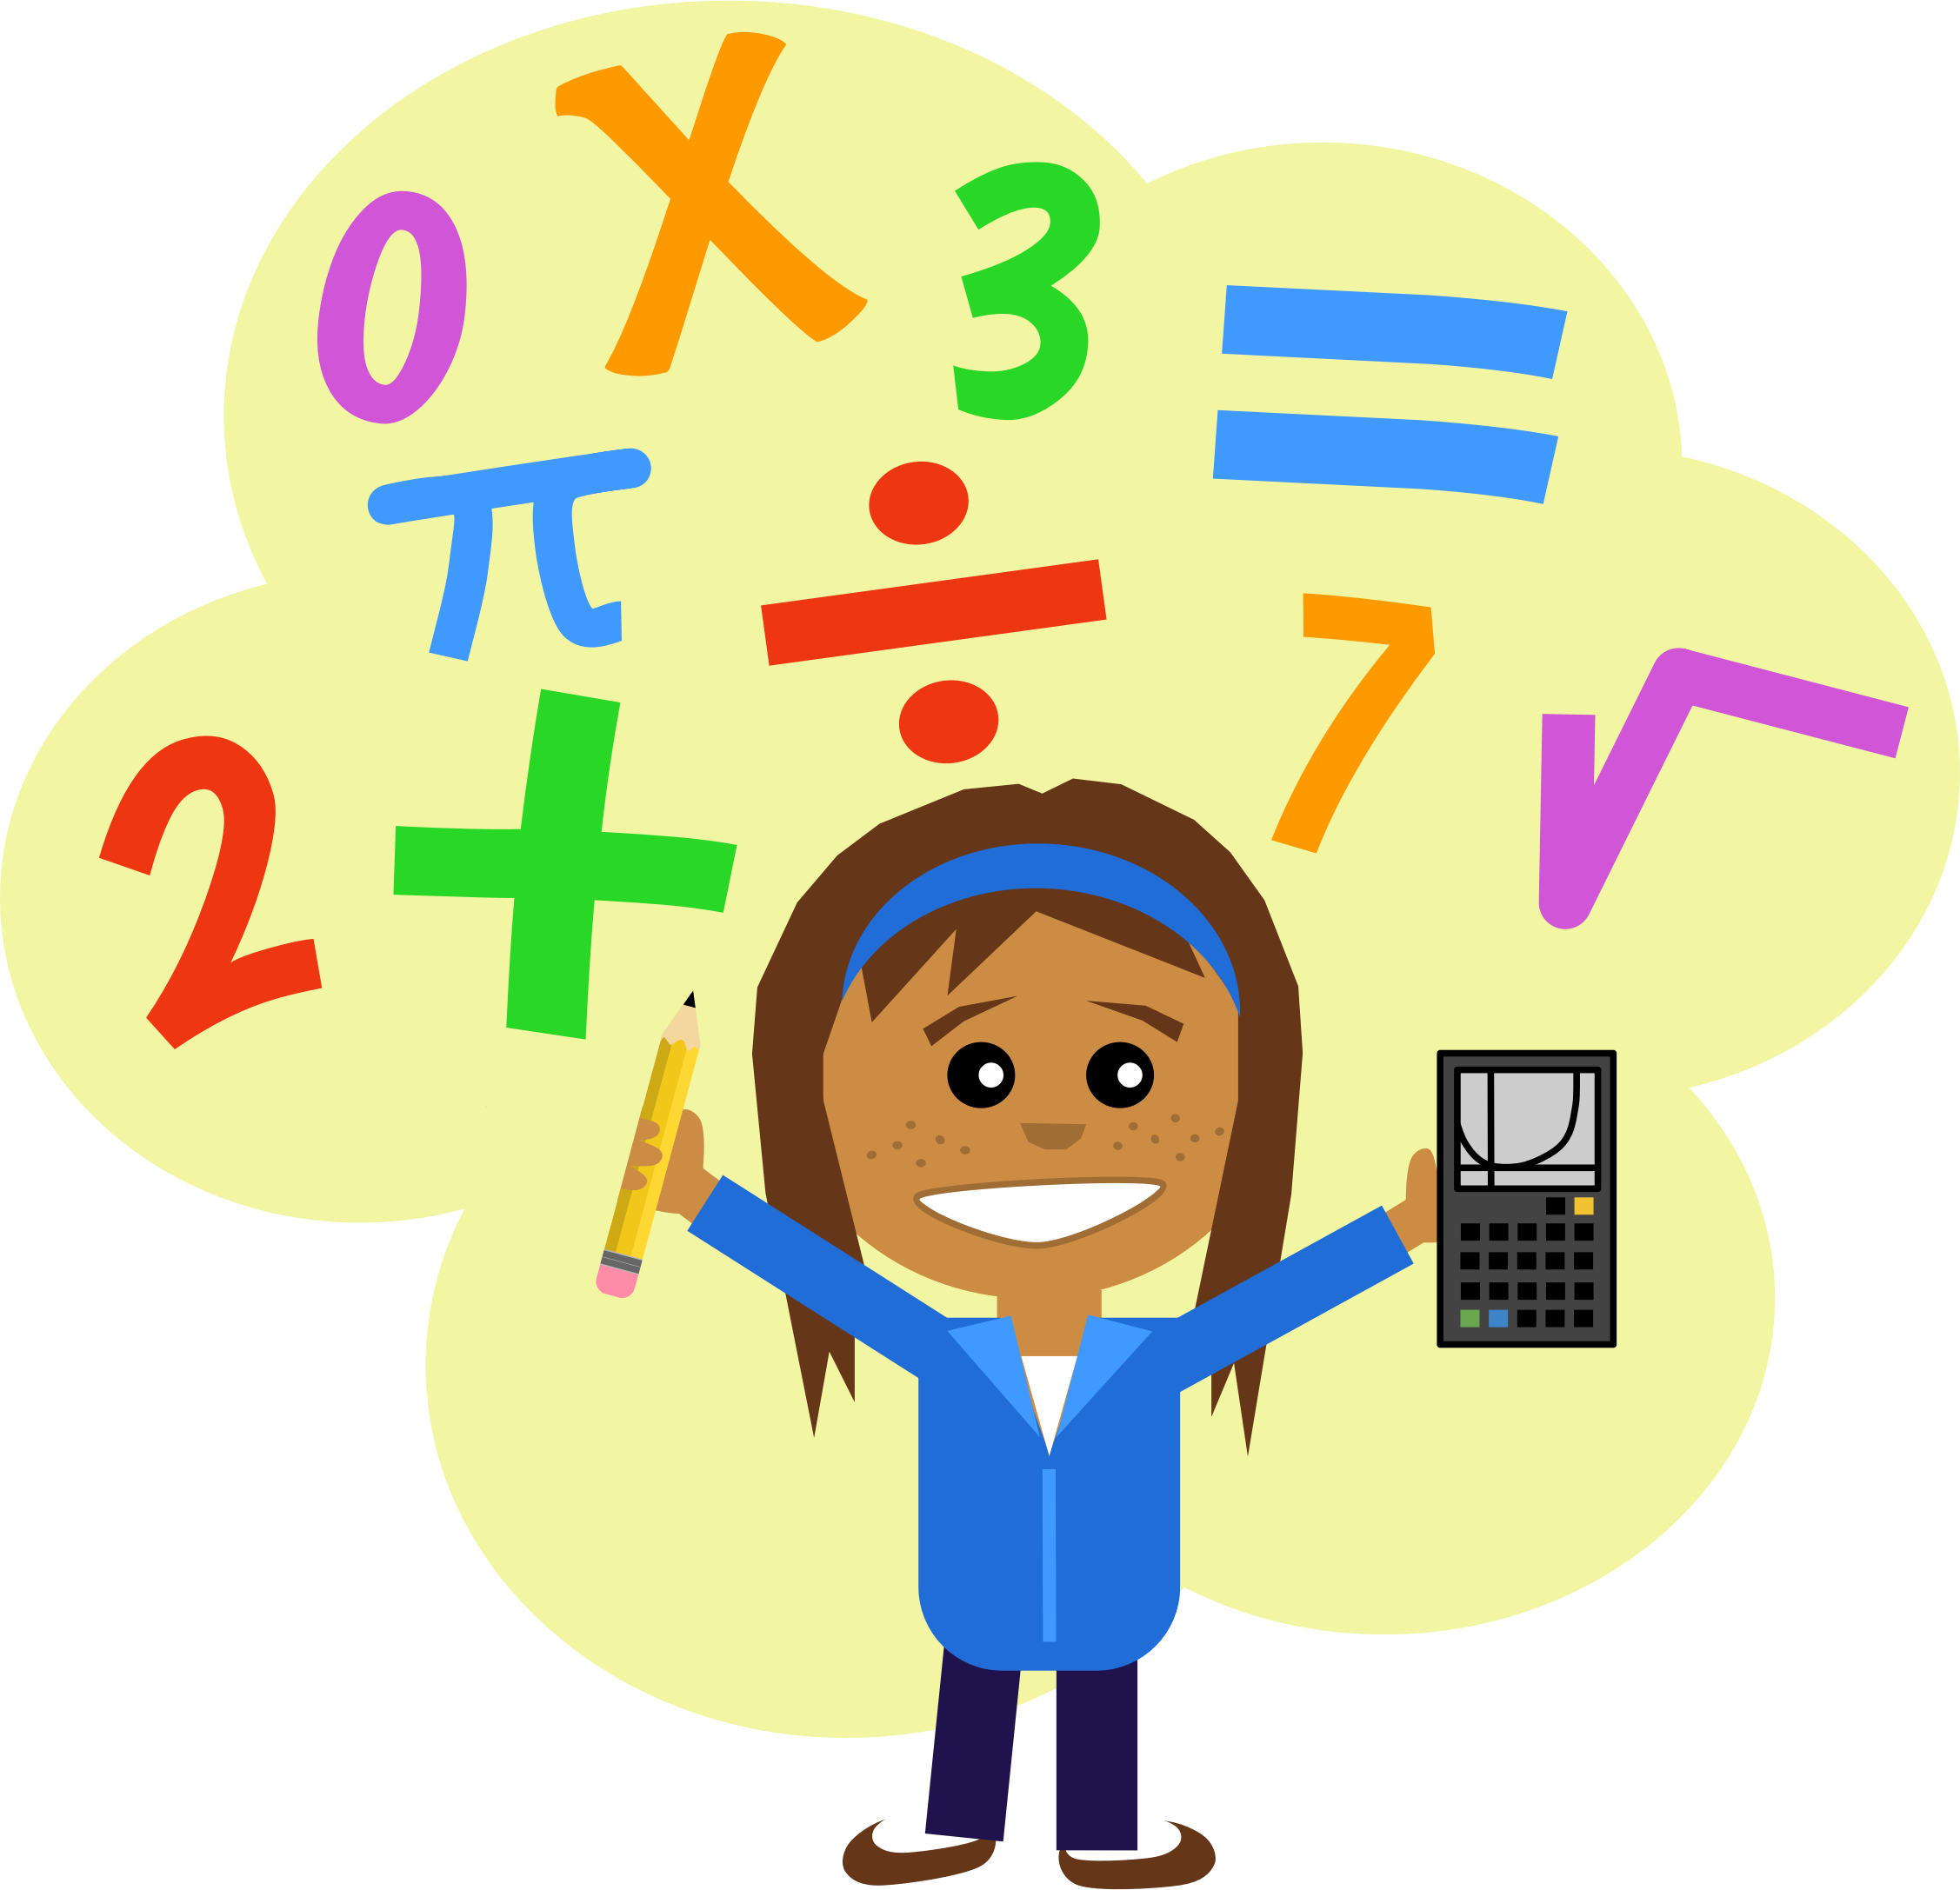 Kids math png. Collection of clipart